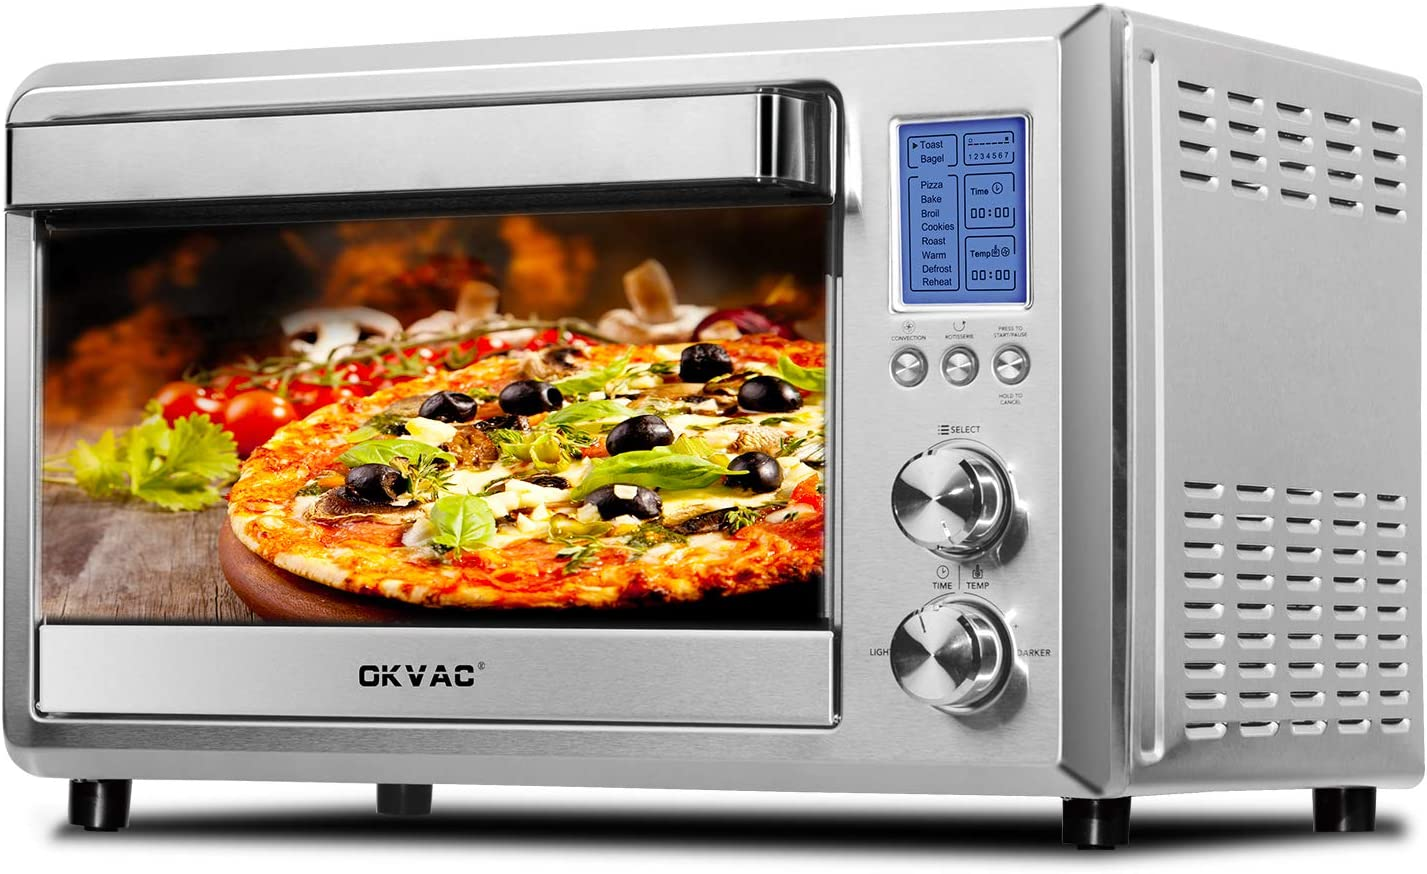 OKVAC Toaster Oven Convection Toaster Oven with LCD Display and 4 Heating Elements IQ 1500W 9 Slice Toaster Oven with 10 Pre-set Cooking Functions Brushed Stainless Steel